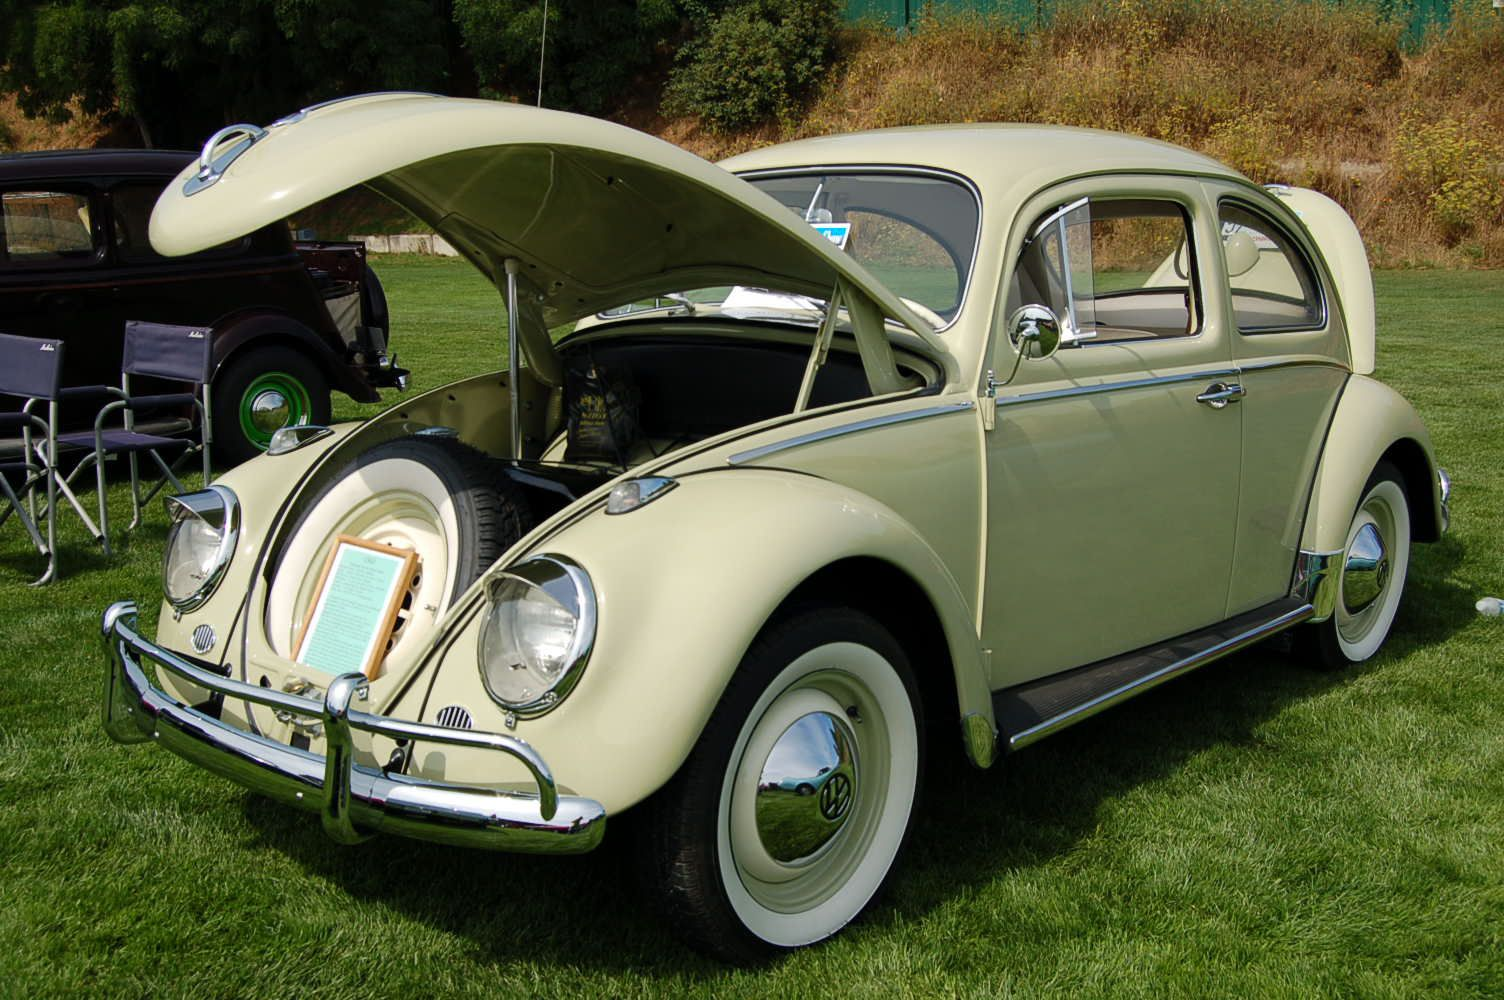 car photo bugs modified volkswagen like photos look beetle stock to dinosaur image